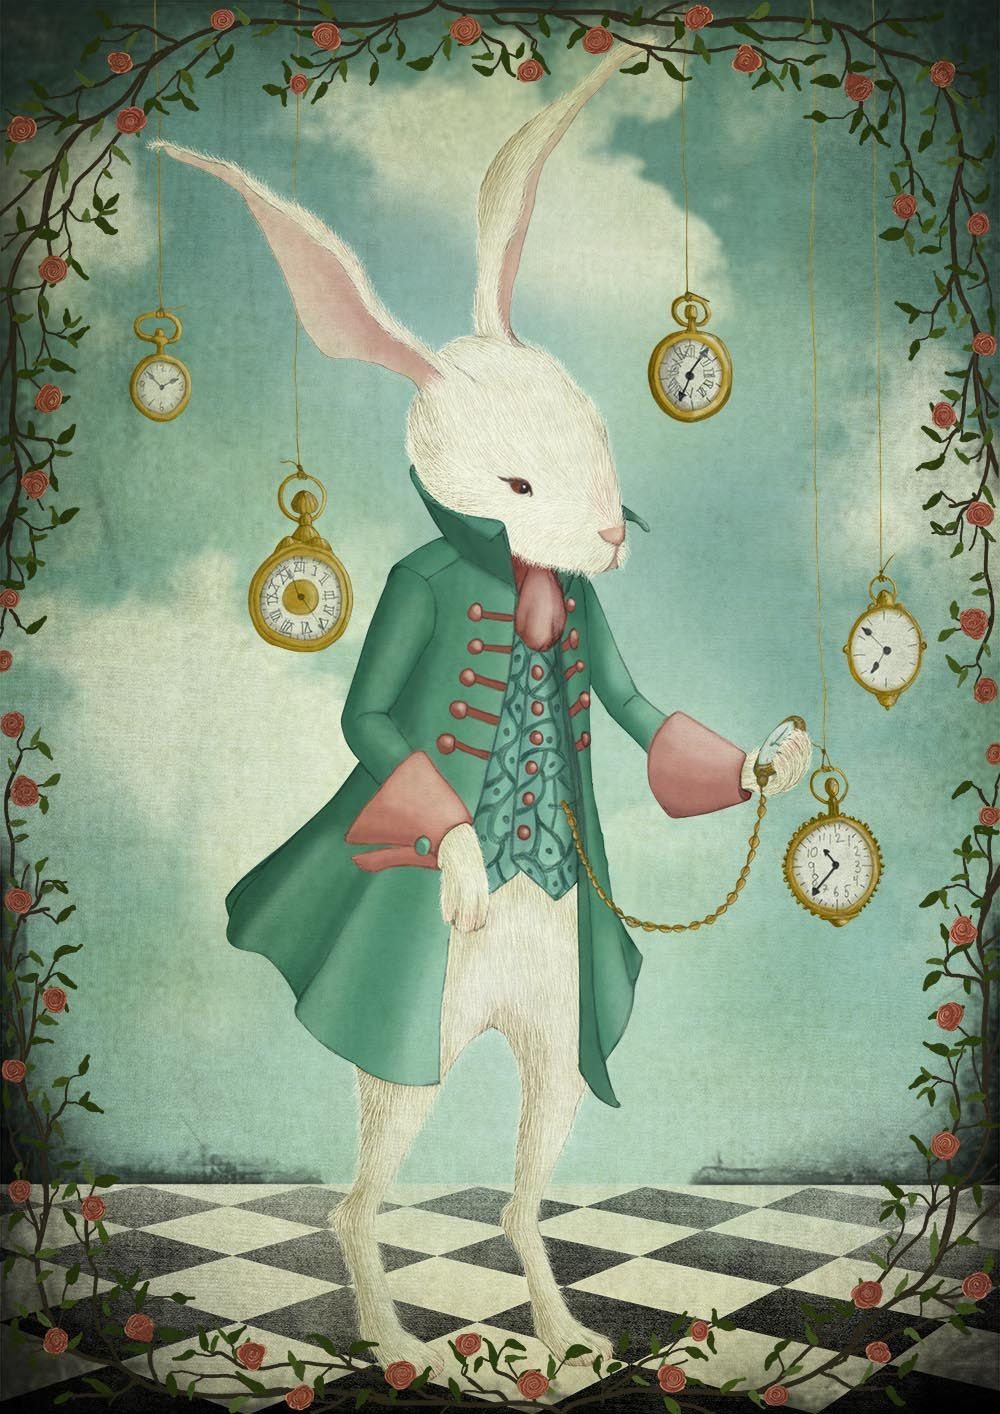 "The white rabbit - Illustration print (size 7"" x 5"") by majalin on Etsy"